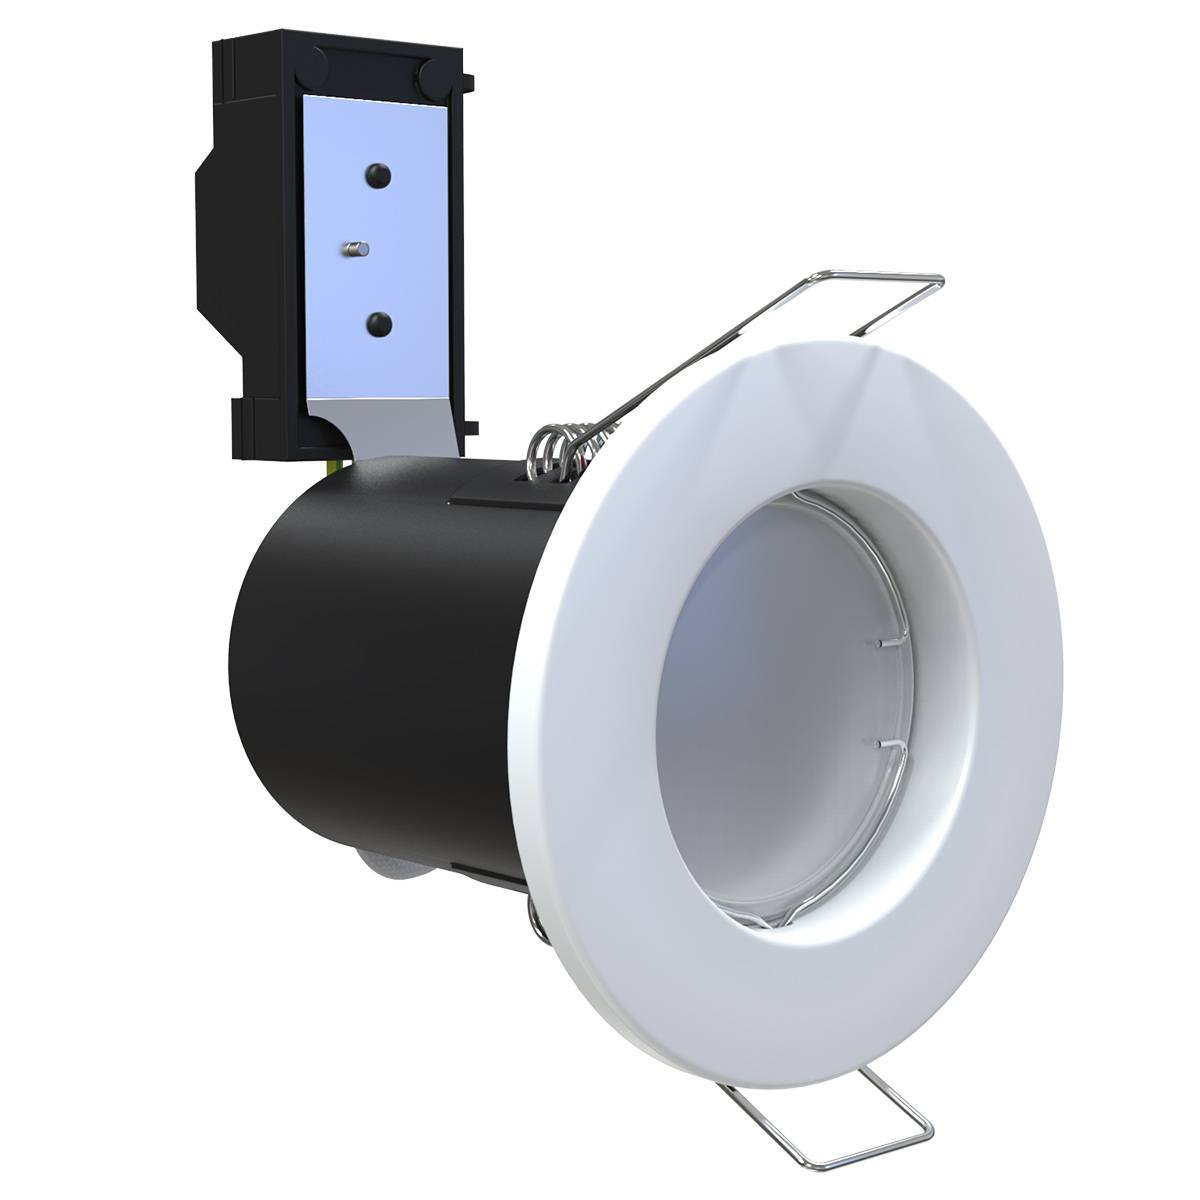 Simple Lighting Fire Rated GU10 LED Fixed Downlight in White, Brushed Chrome or Chrome